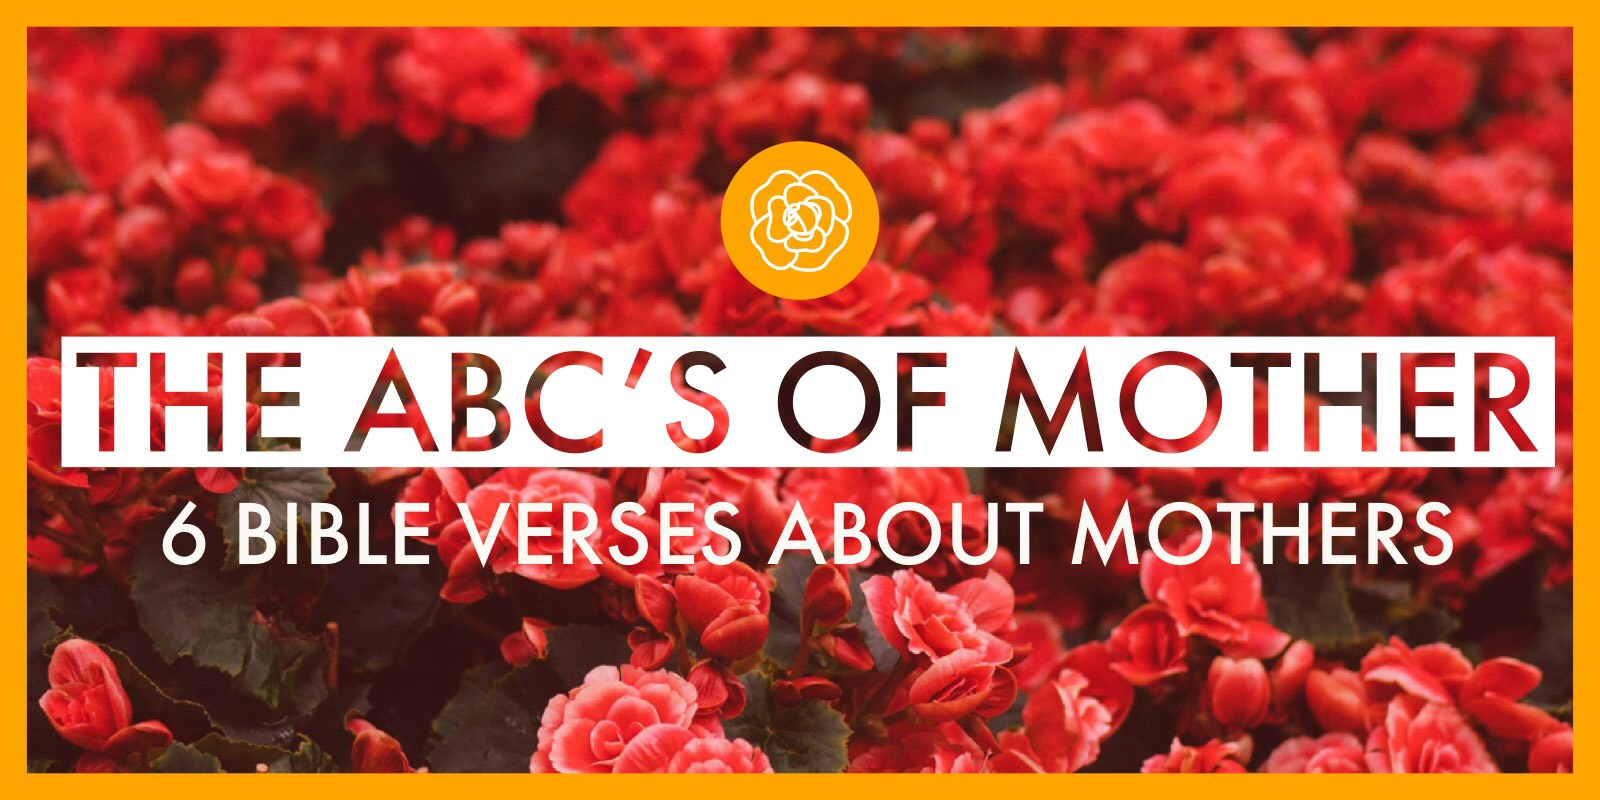 The ABC's of Mother